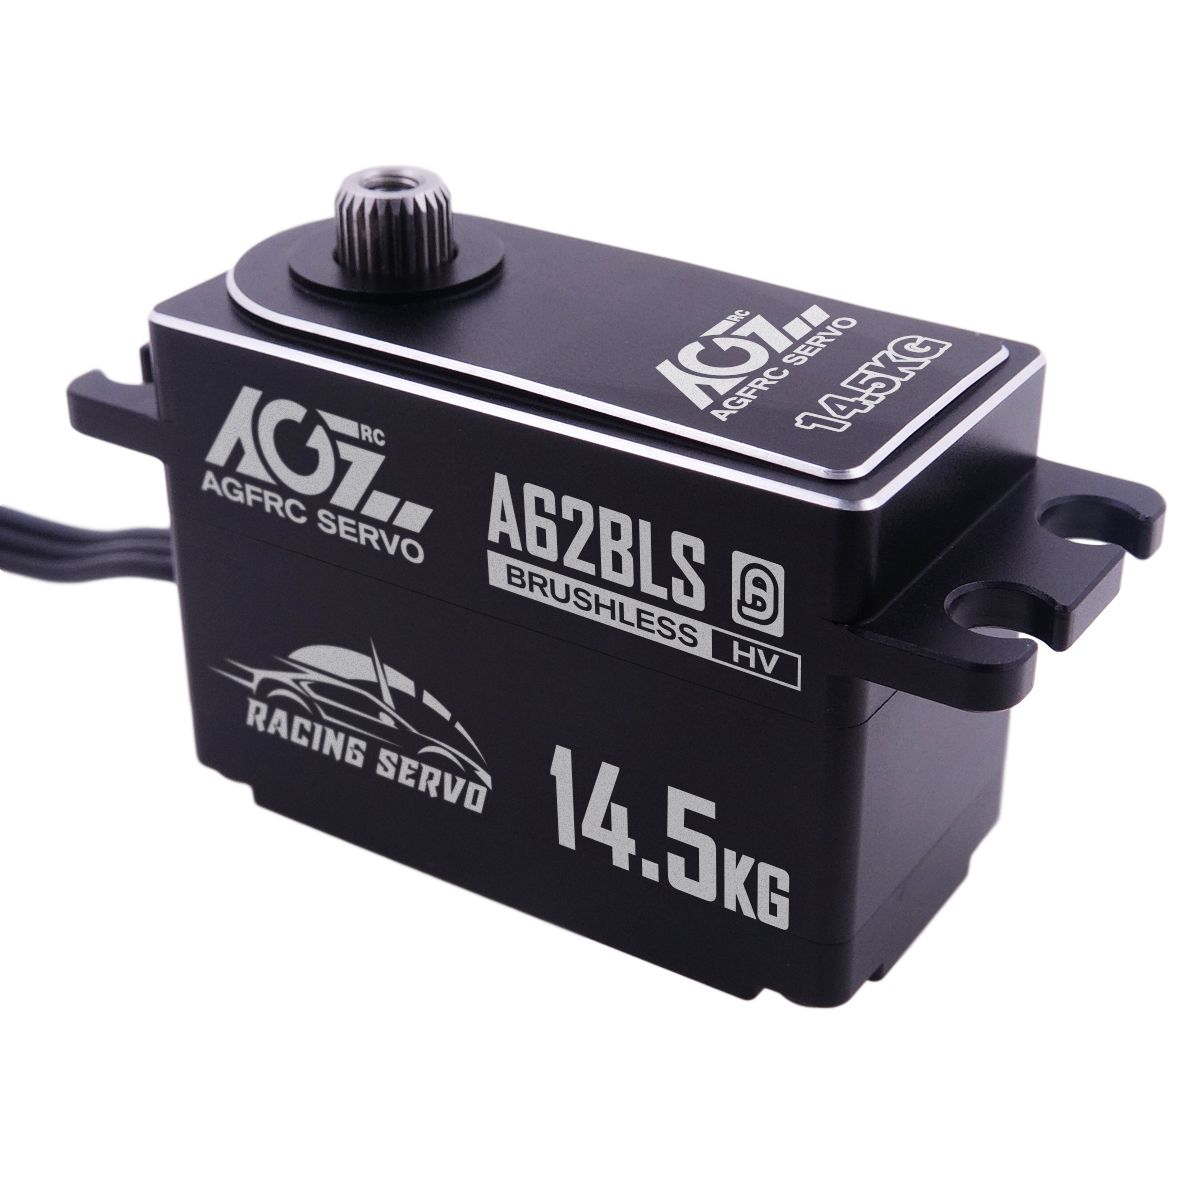 A62BLS Wide Voltage 25T High Speed Brushless Servo 10-14.5kg For RC Drifting Car